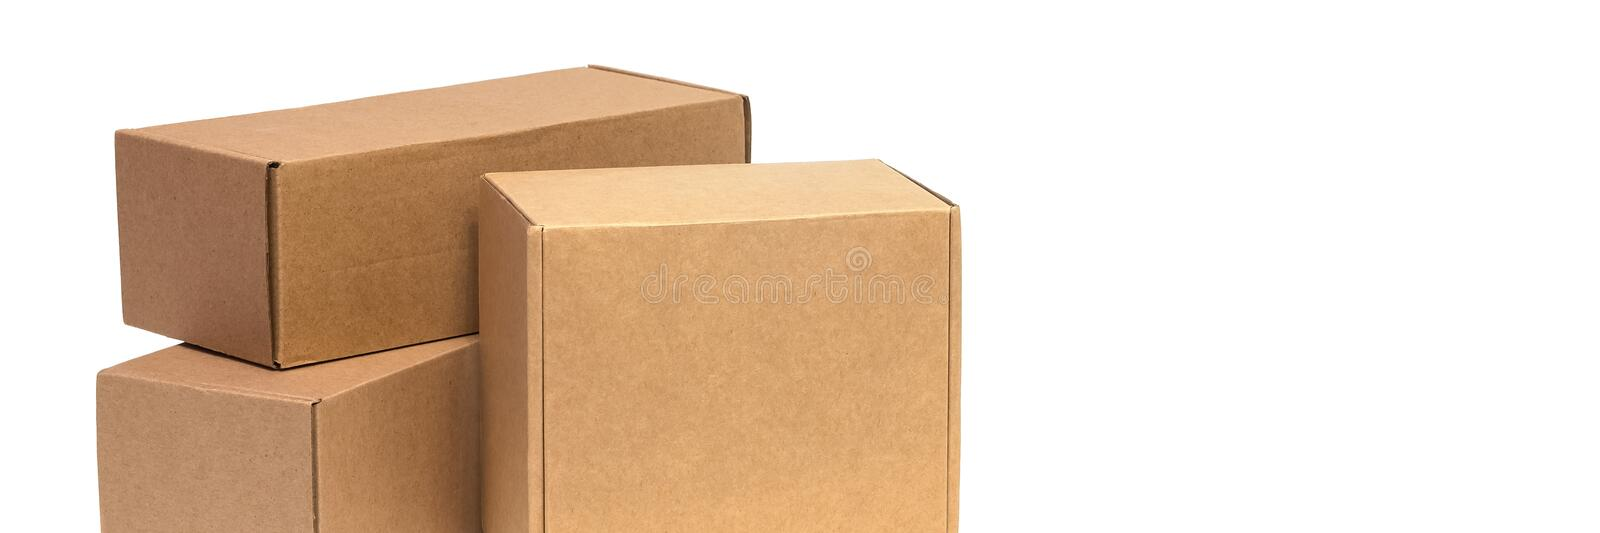 Cardboard boxes for goods on a white background. Different size. Isolated on white background.  royalty free stock photo